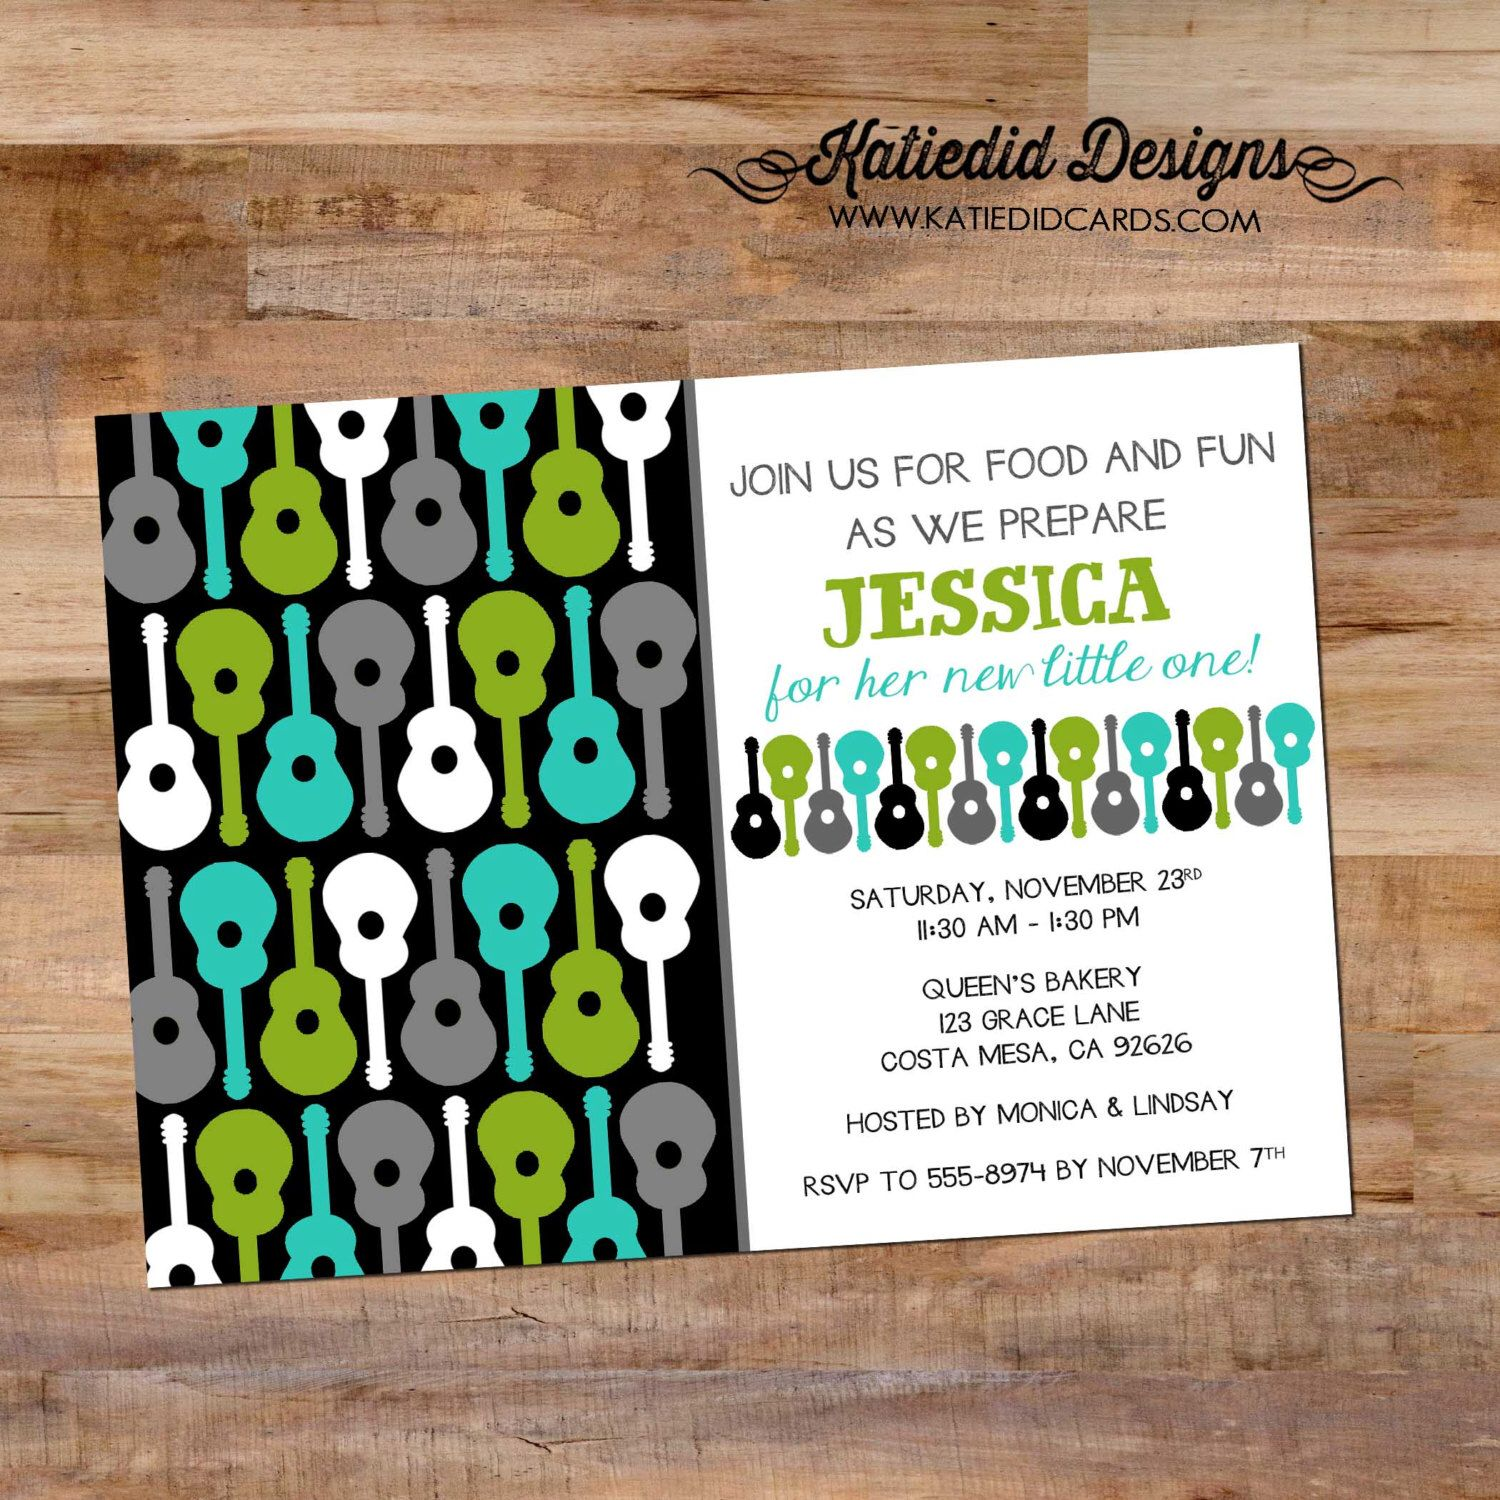 baby boy shower invitation groovy guitar rockstar pattern retirement twins diaper couples birthday bash (item 1298) shabby chic invitations by katiedidesigns on Etsy https://www.etsy.com/listing/167686895/baby-boy-shower-invitation-groovy-guitar